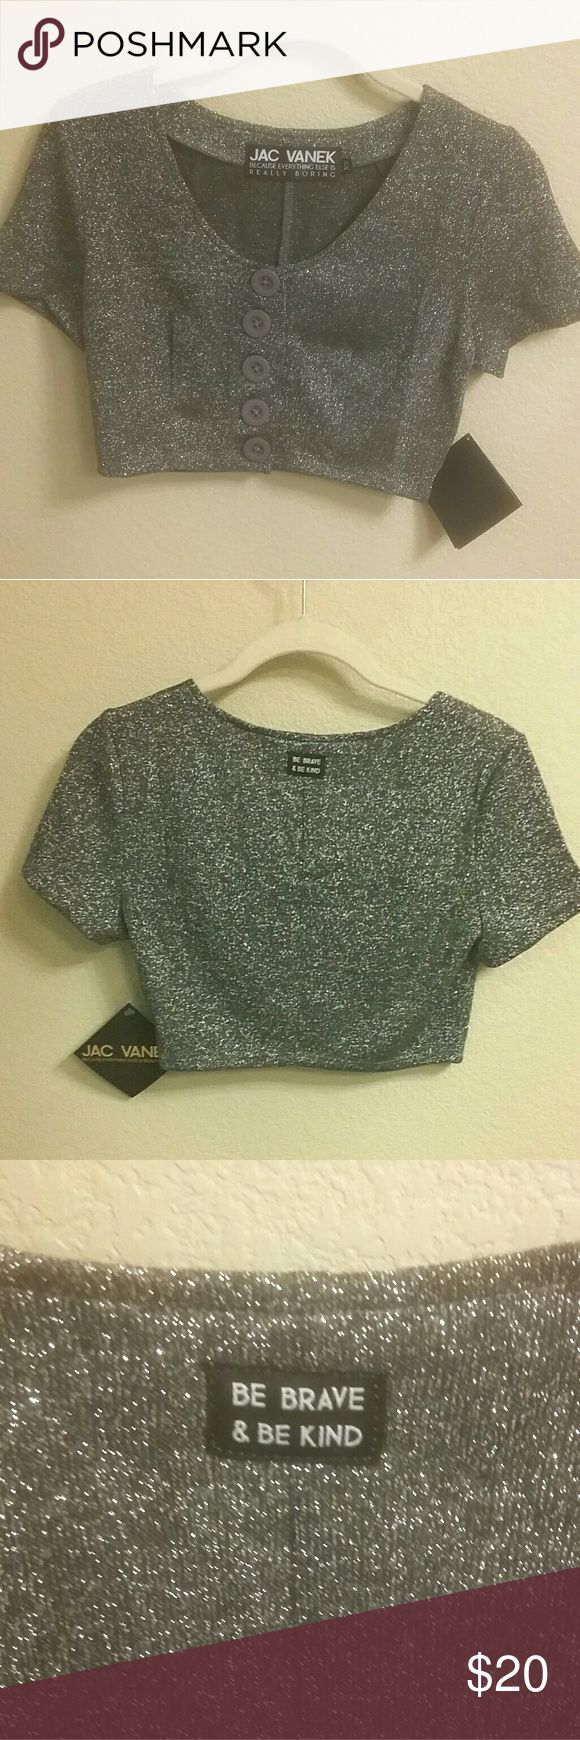 """NWT Jac Vanek Sparkly Crop Top Brand new with tags. Has """"Be Brave Be Kind Sewn into the back of the top. Jac Vanek Tops Crop Tops"""